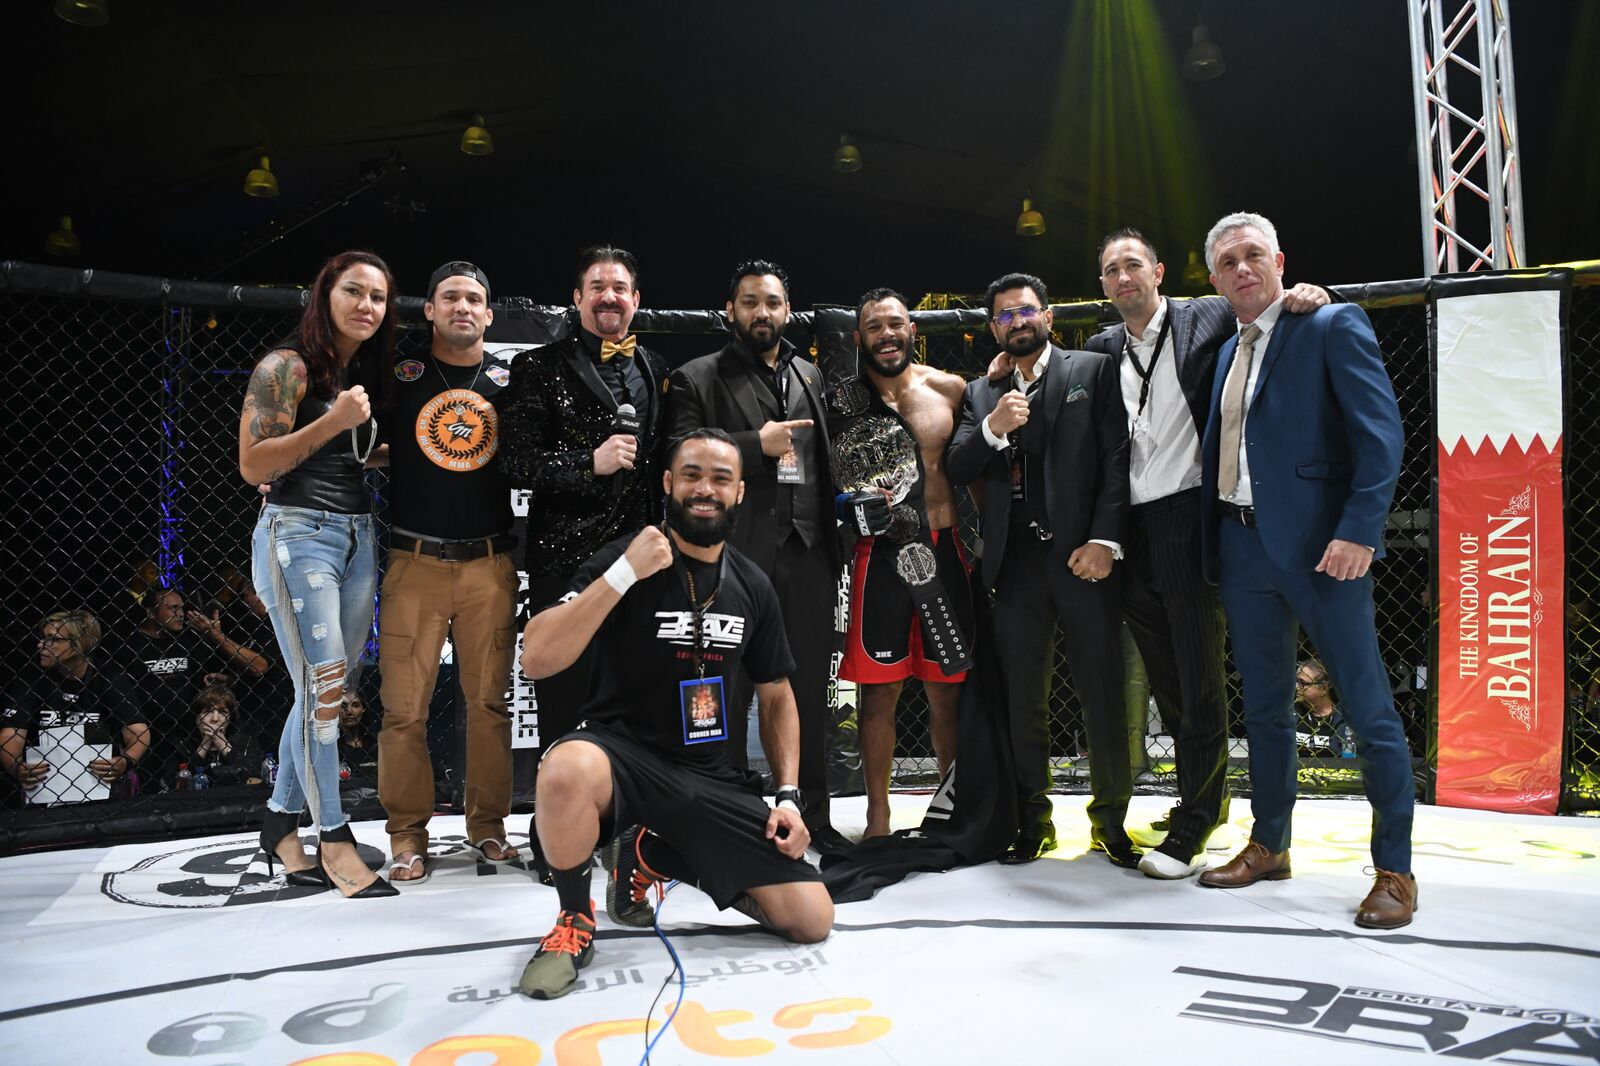 """Daniel """"Gaucho"""" brutalizes Chad Hanekom, becomes first-ever BRAVE CF Middleweight champion -"""